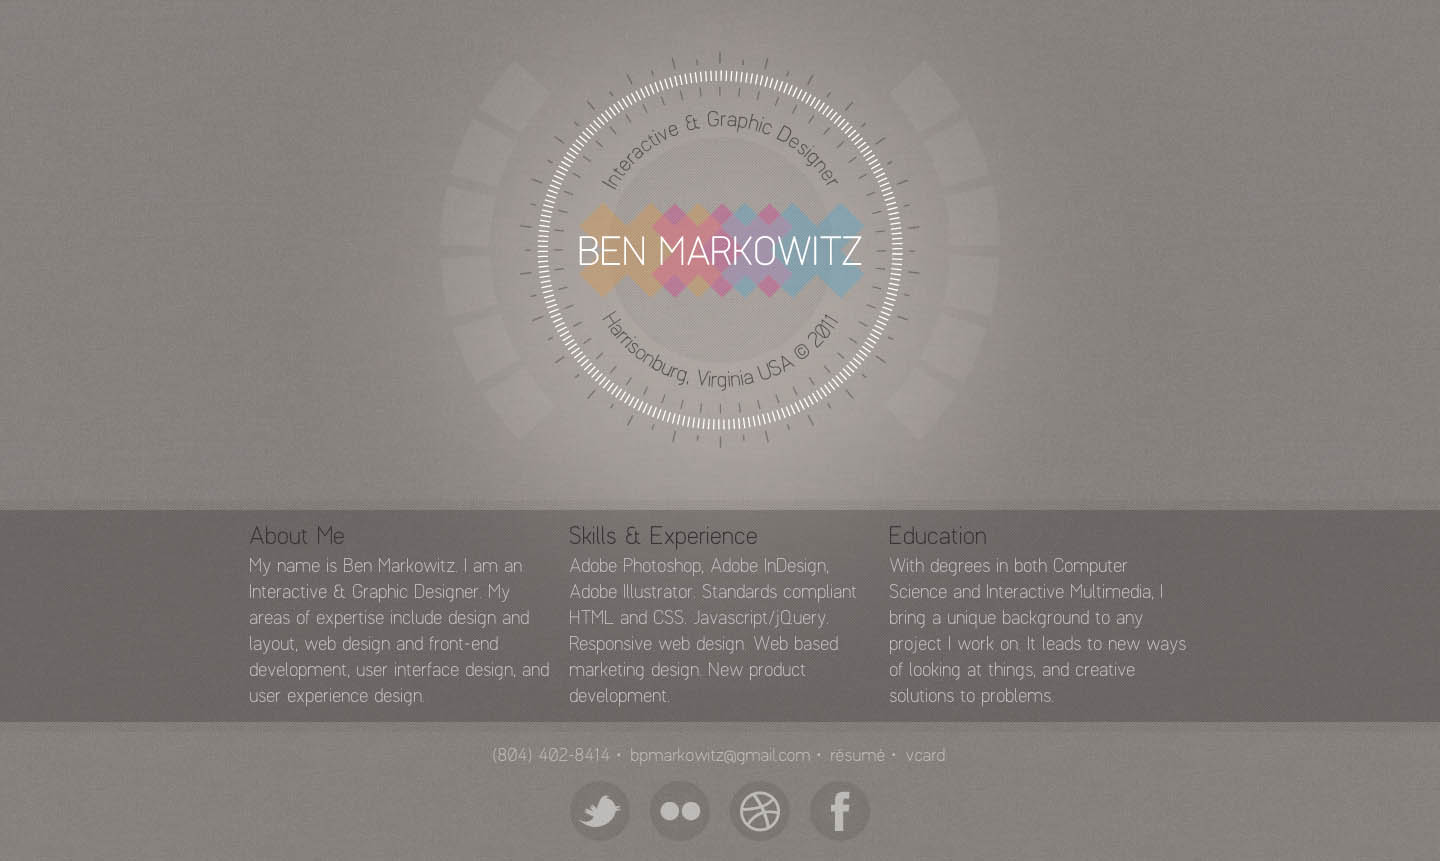 Ben Markowitz Website Screenshot